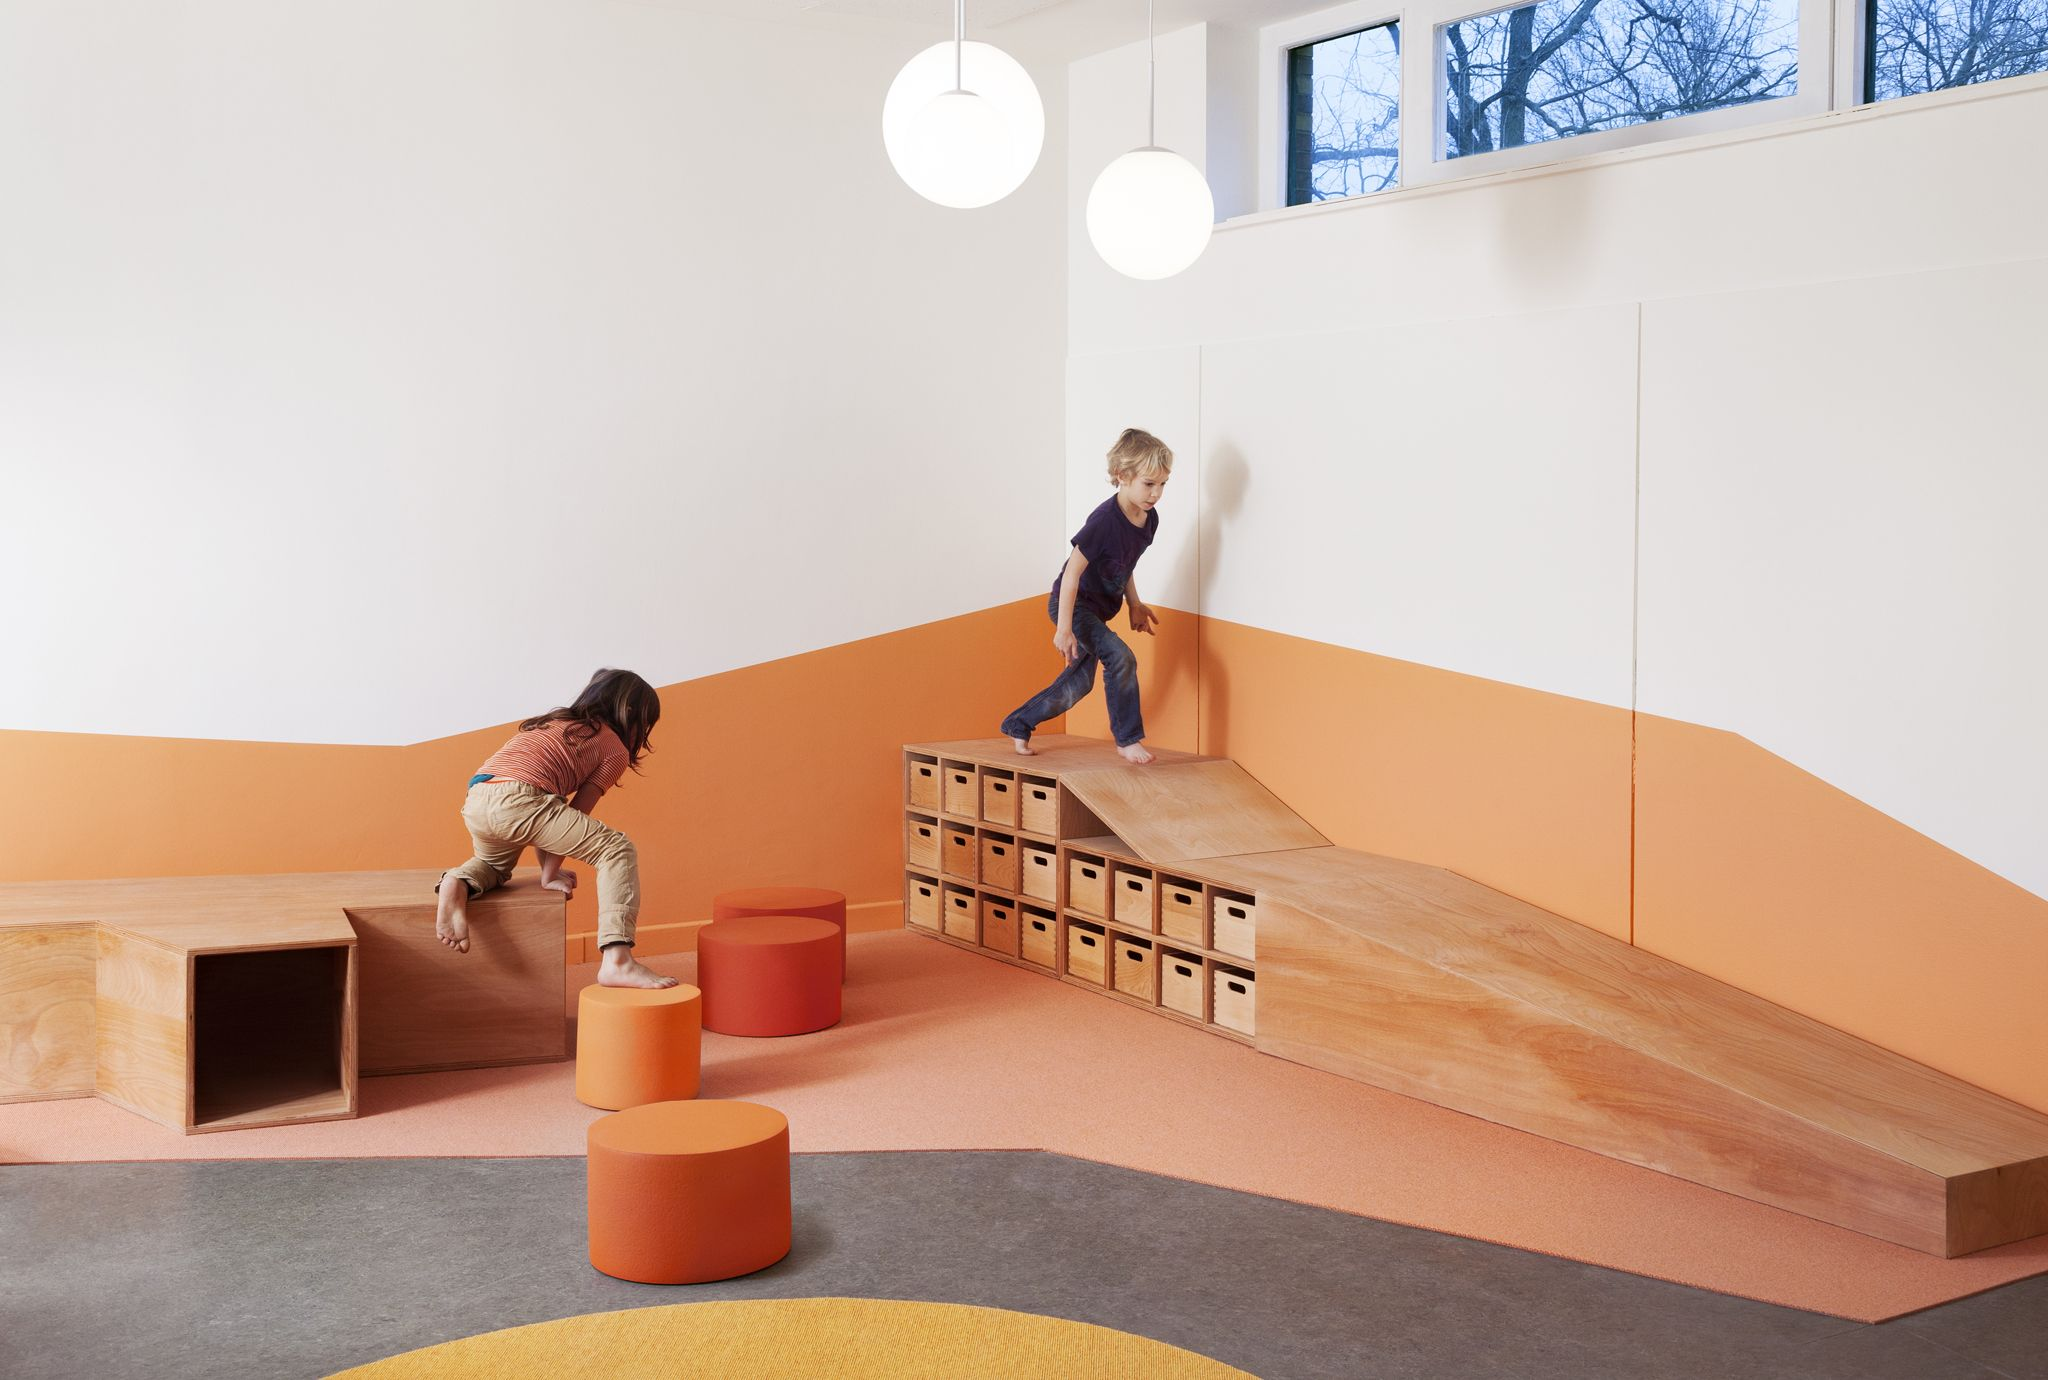 Kindermöbel Design Berlin Sinnewandel Kindergarten In Berlin Designed By Baukind And